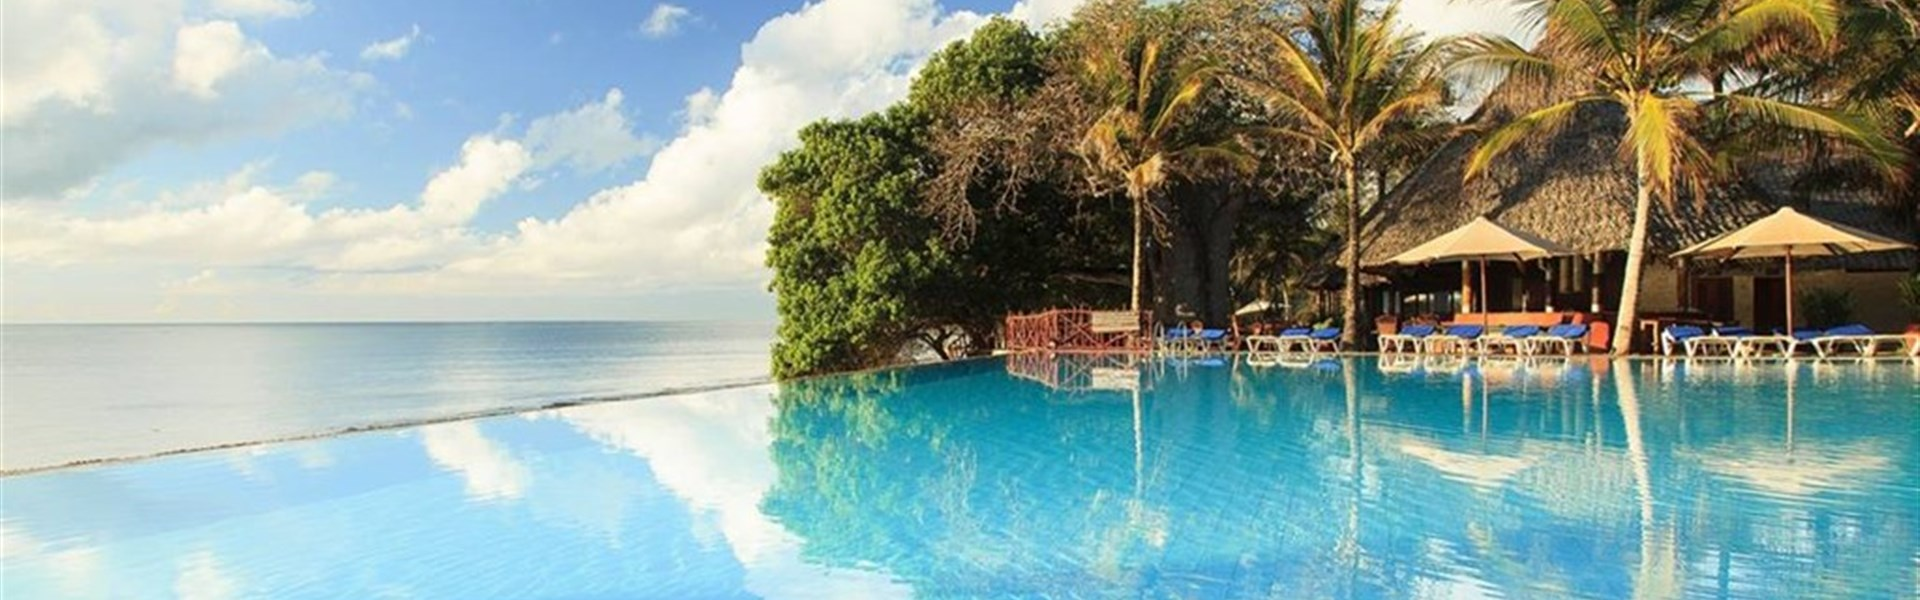 Marco Polo - Baobab Resort and Spa - Diani - Baobab-Beach-Resort-and-Spa